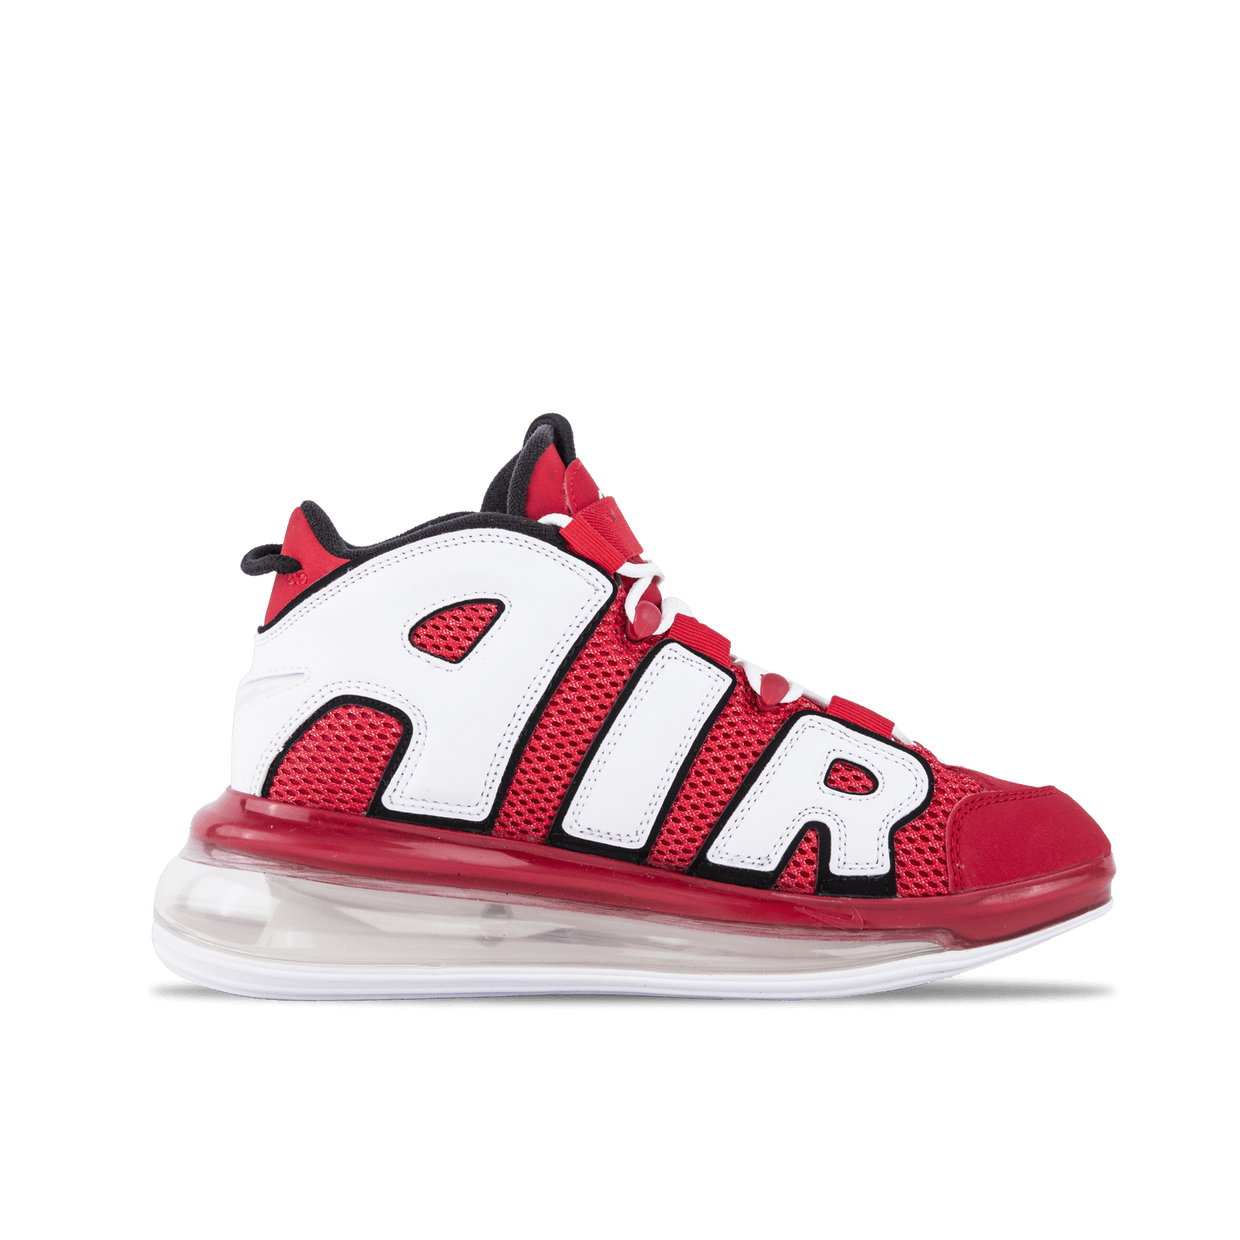 Air More Uptempo 720 QS 2 - Red/White/Black